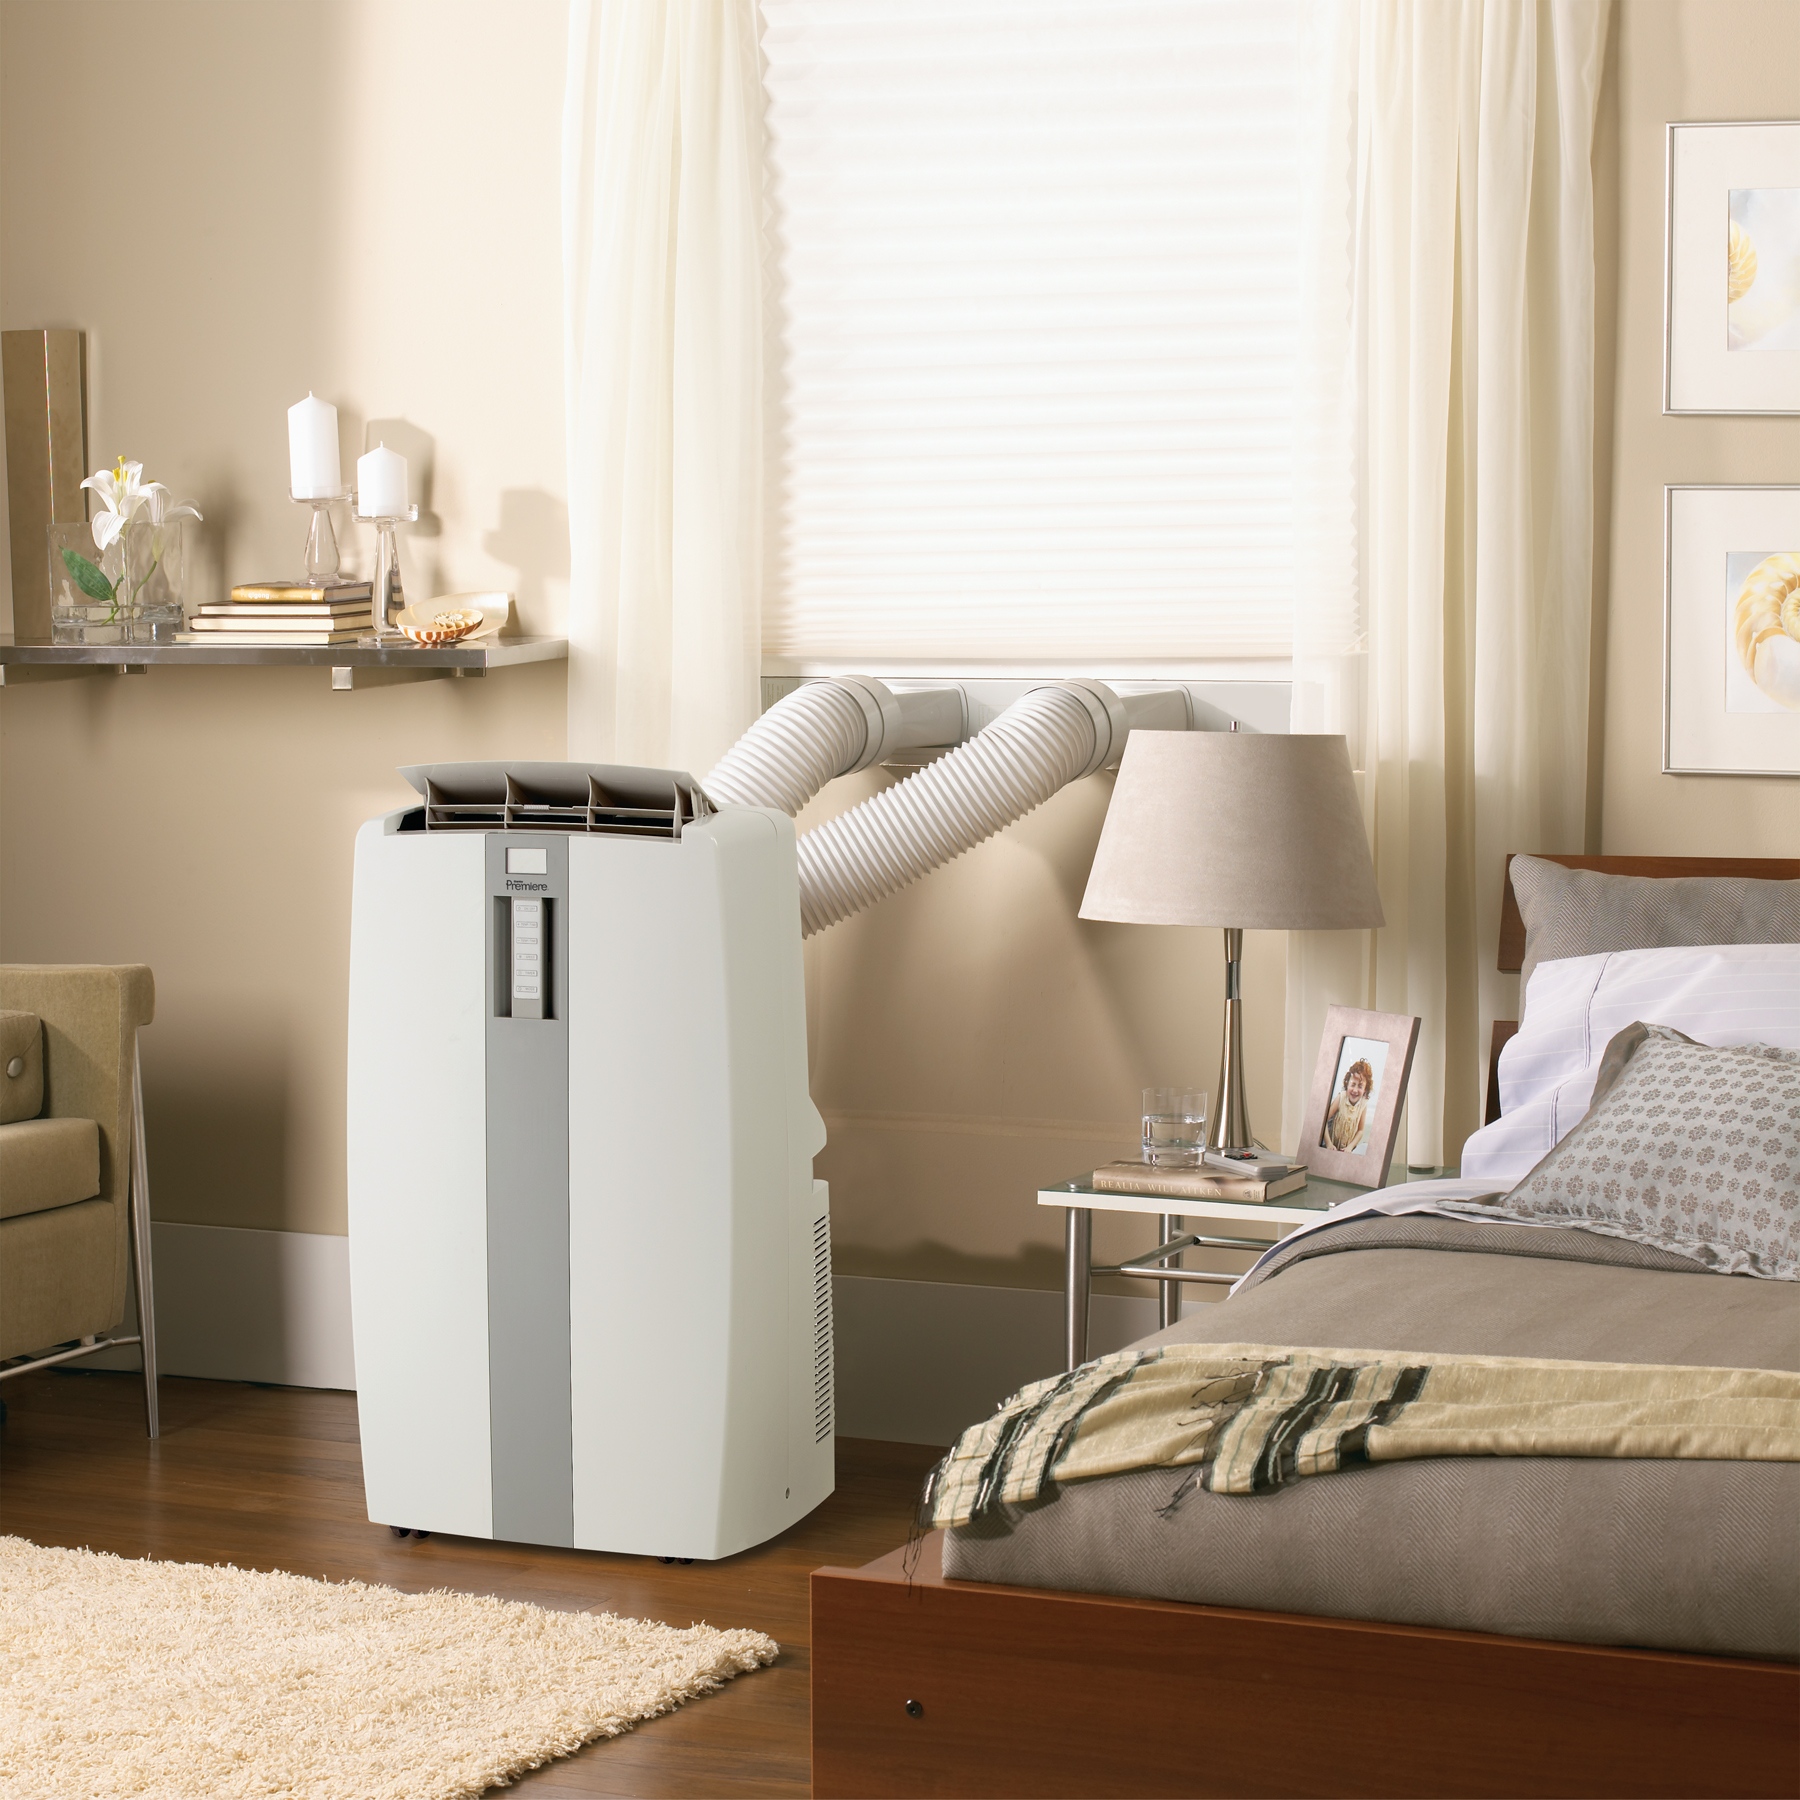 portable air conditioner the economical solution danby. Black Bedroom Furniture Sets. Home Design Ideas